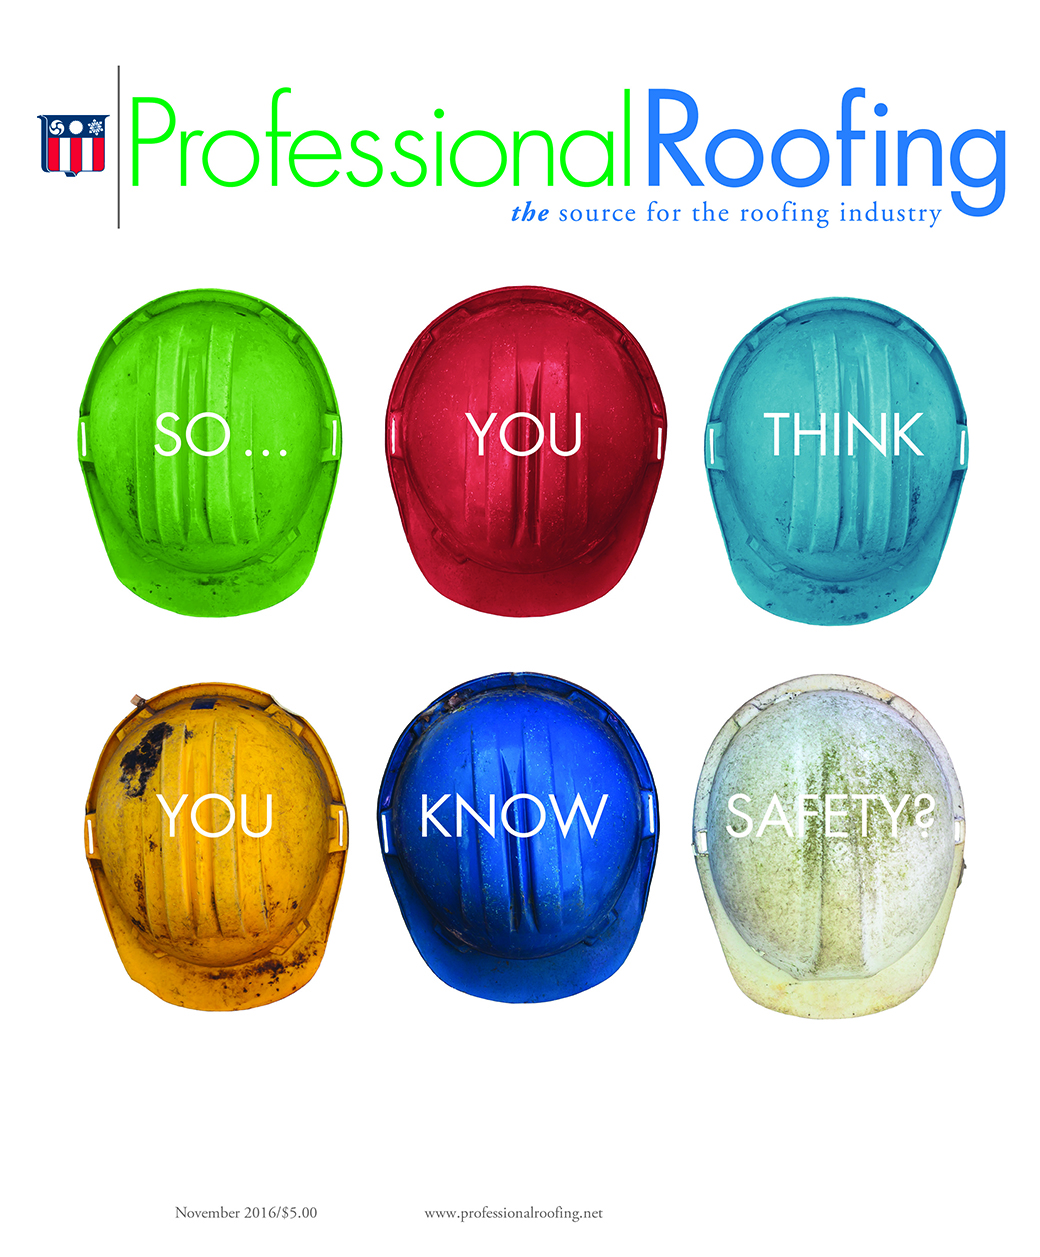 Professional Roofing Magazine 11/1/2016